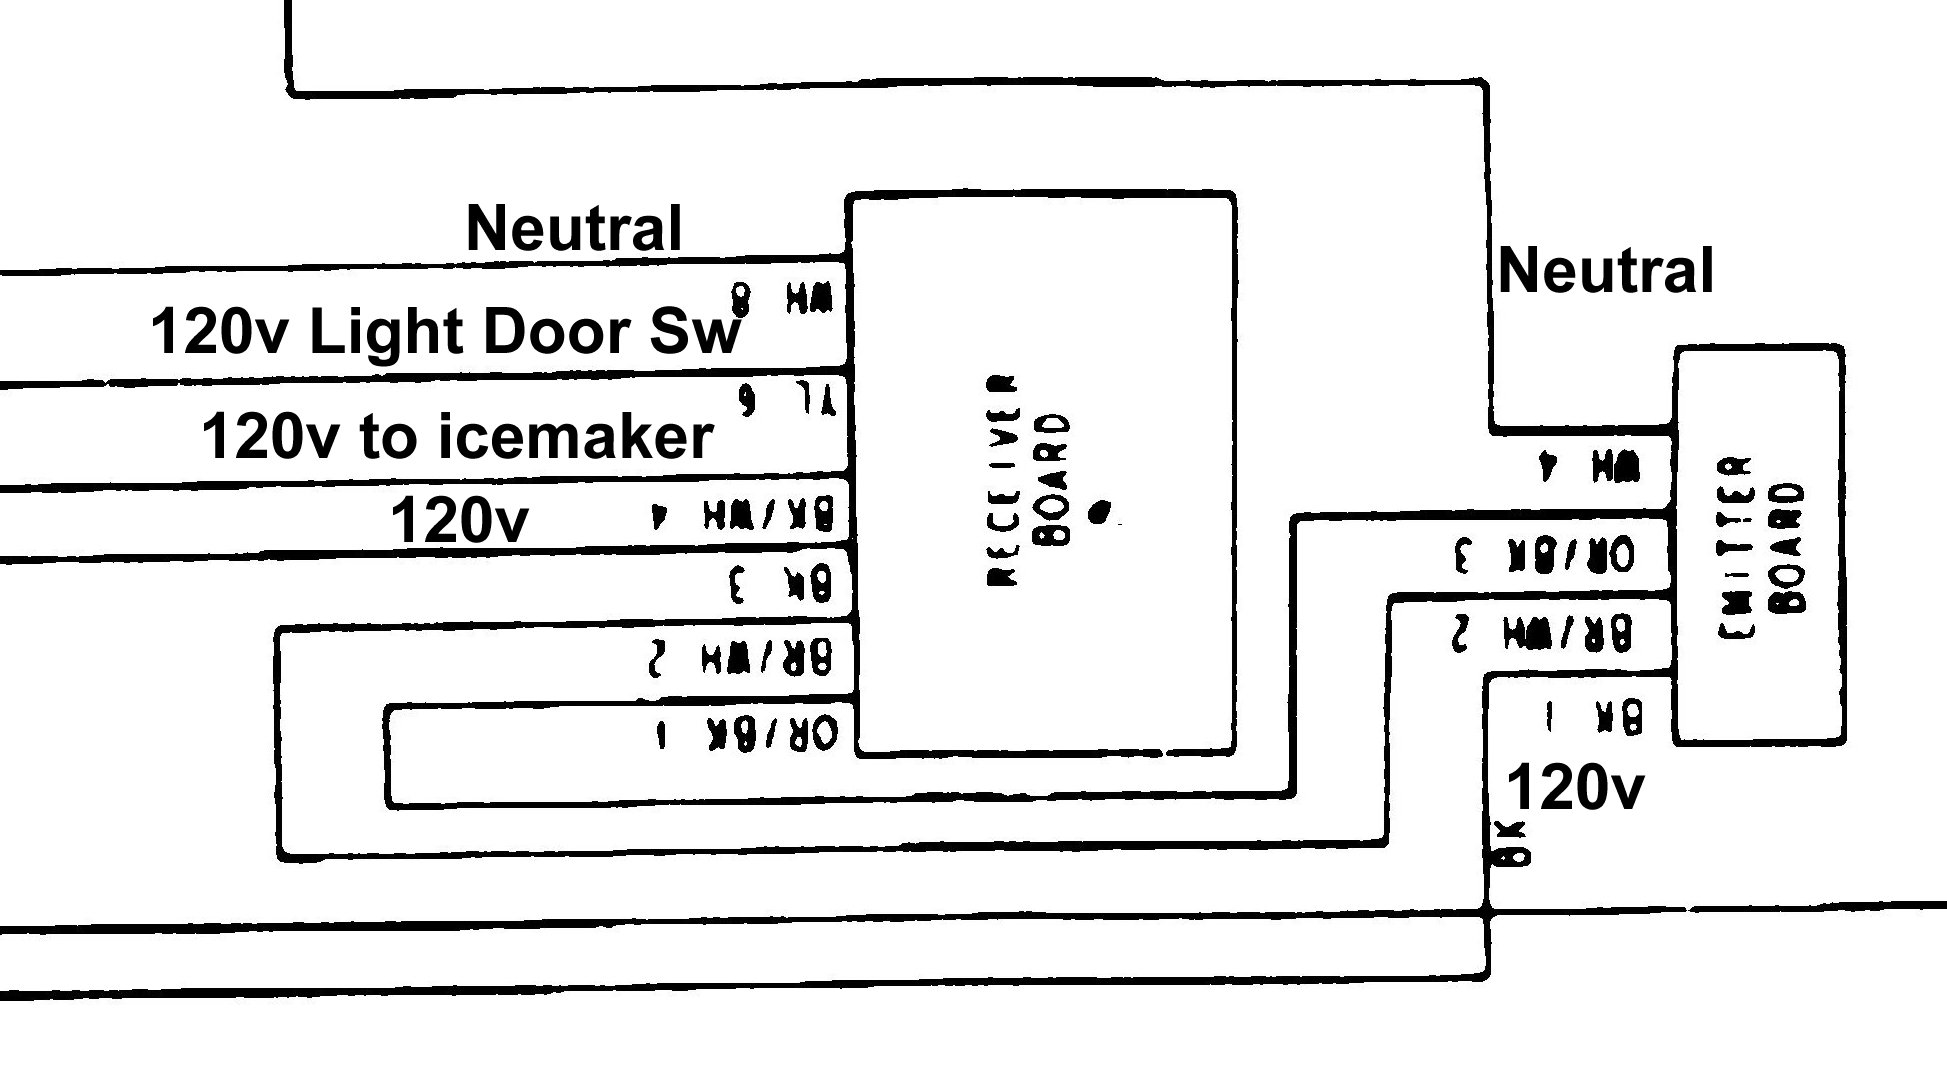 refrigerator wiring diagram whirlpool refrigerator whirlpool dishwasher wiring diagram whirlpool wiring diagram on refrigerator wiring diagram whirlpool